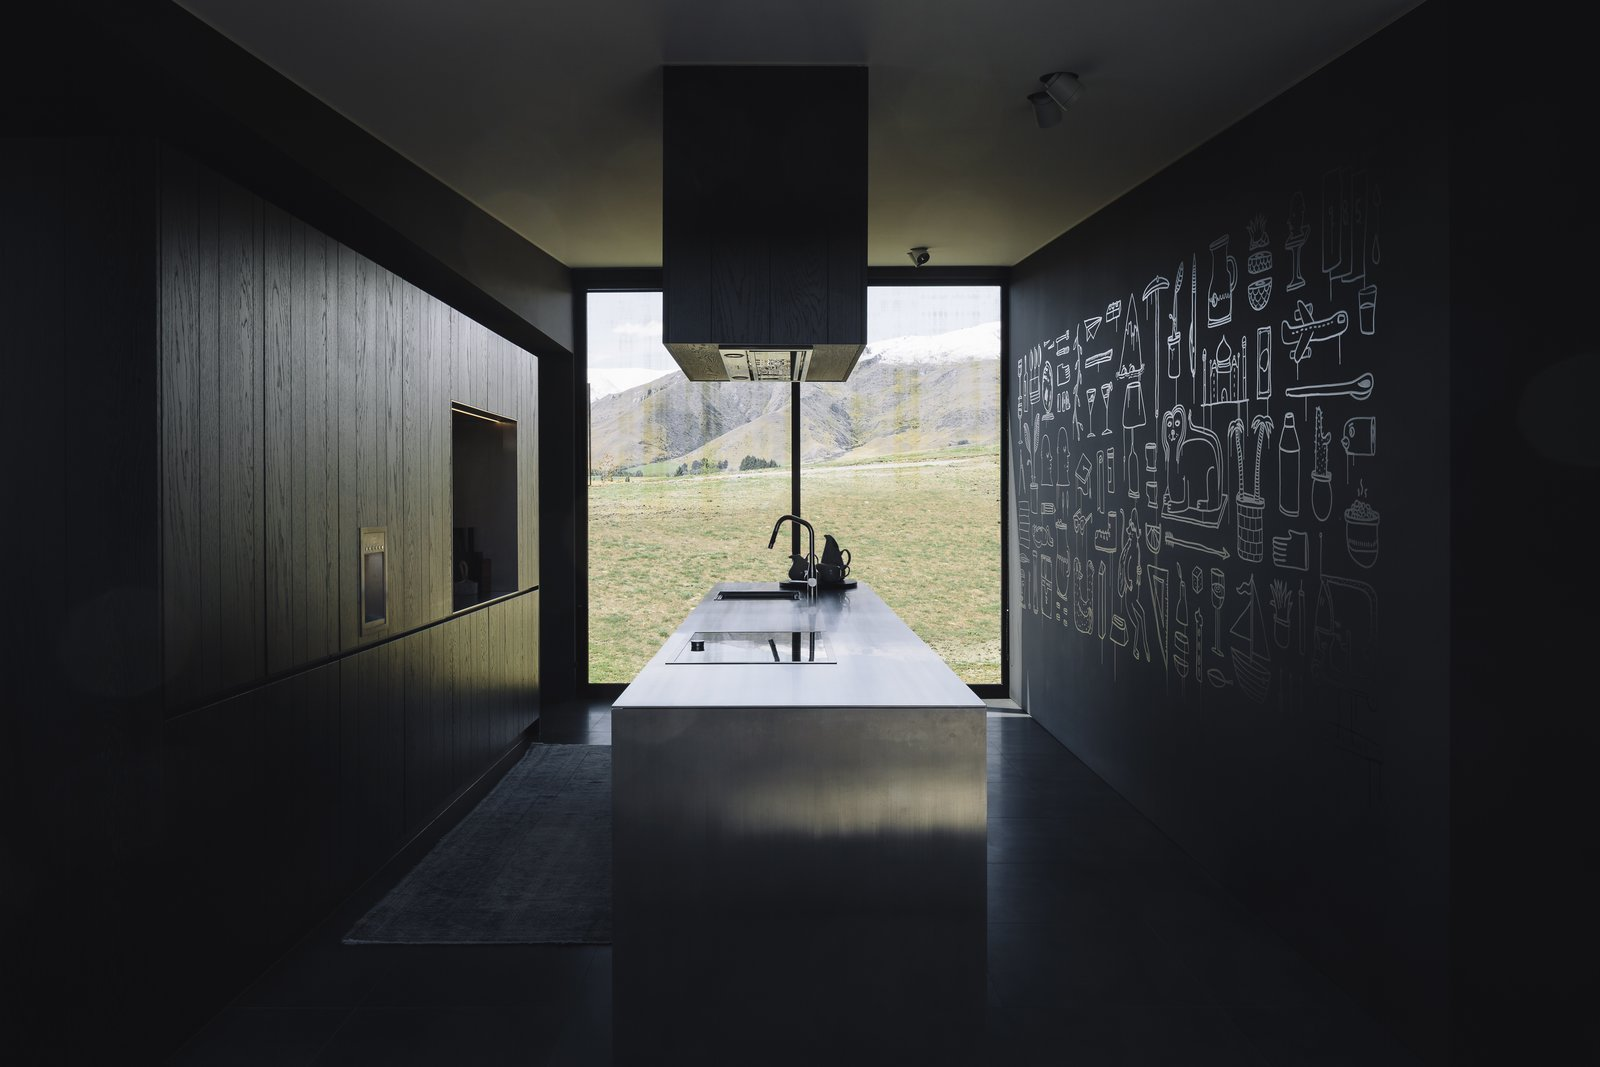 Kitchen, Range Hood, Wall Oven, Cooktops, Undermount, Refrigerator, Wood, Ceiling, Ceramic Tile, and Wood Floor to ceiling glass frames the view in the kitchen.  Kitchen Cooktops Undermount Wall Oven Ceramic Tile Photos from A Striking Black House Appears to Float in the New Zealand Mountains